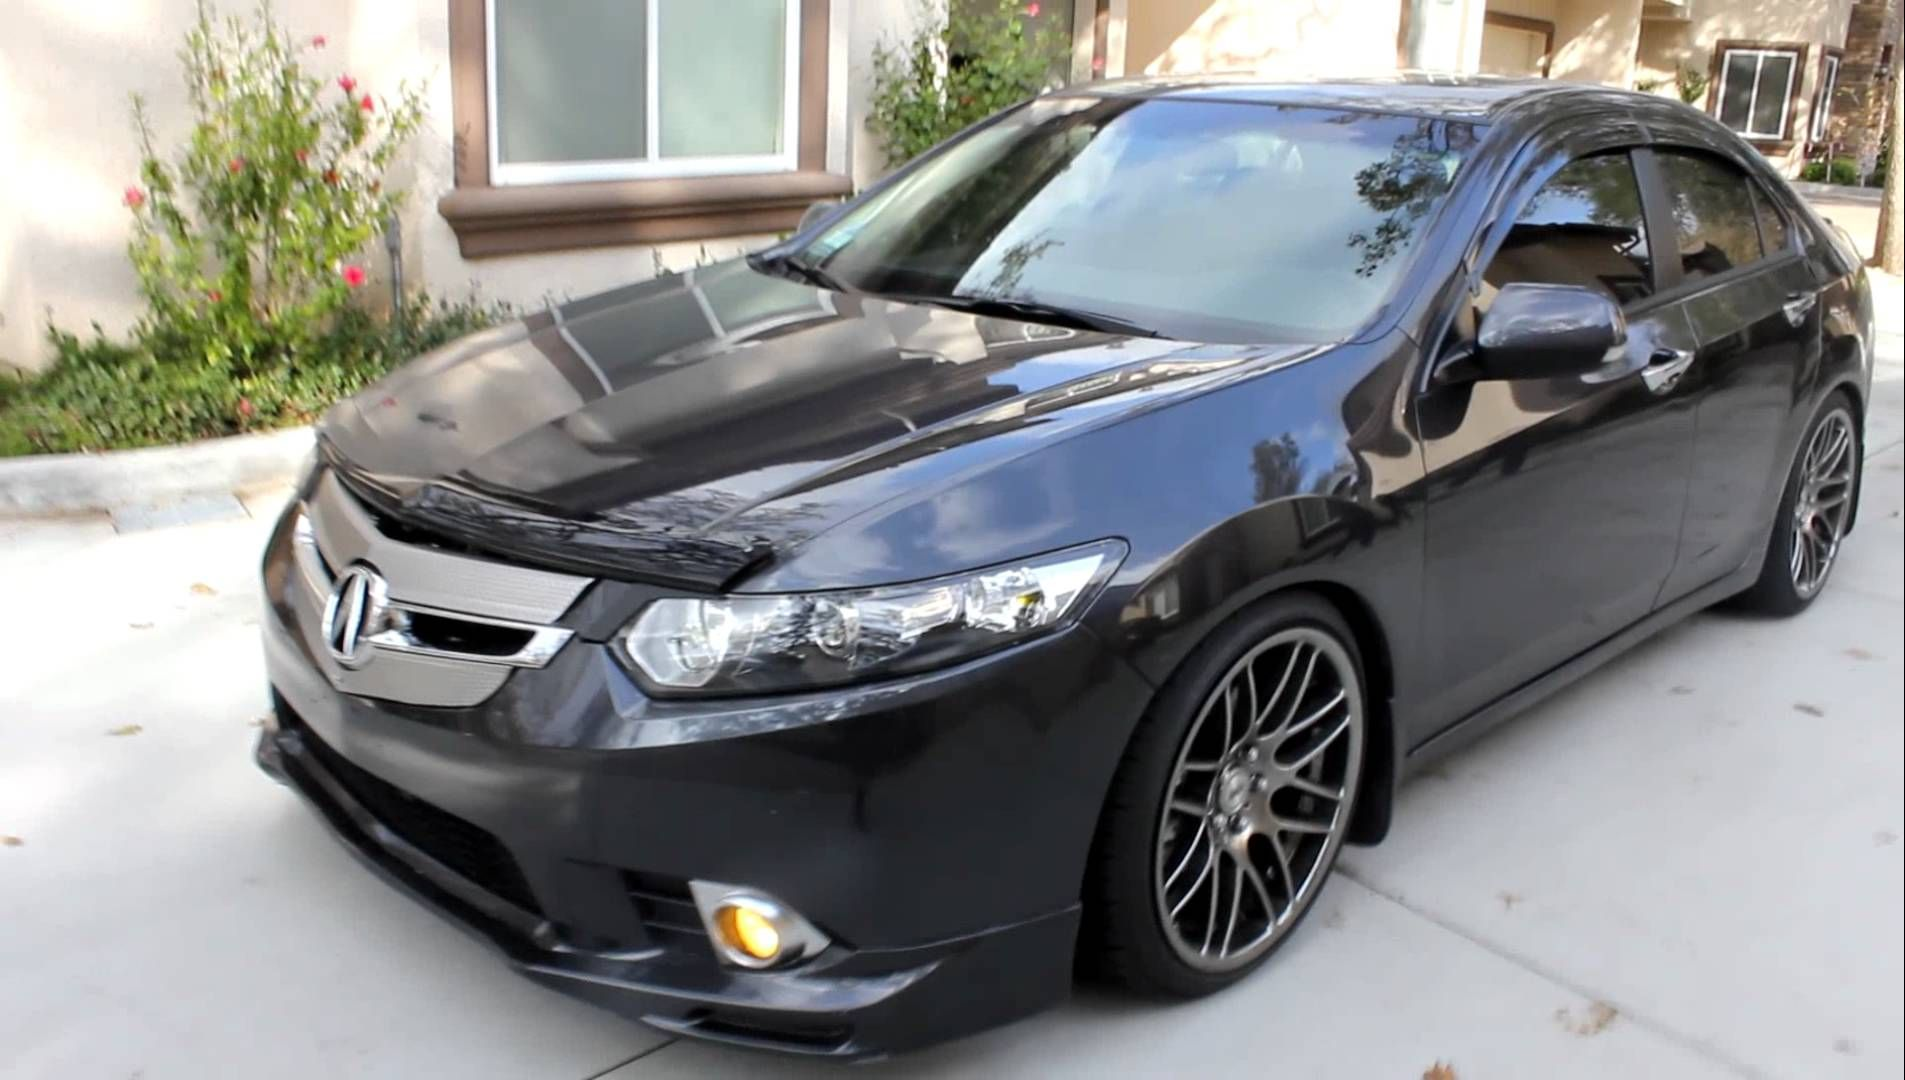 2010 acura tsx owners manual http ownersmanualforyou com 2010 rh pinterest com acura tsx owners manual 2004 2007 acura tsx owners manual.pdf